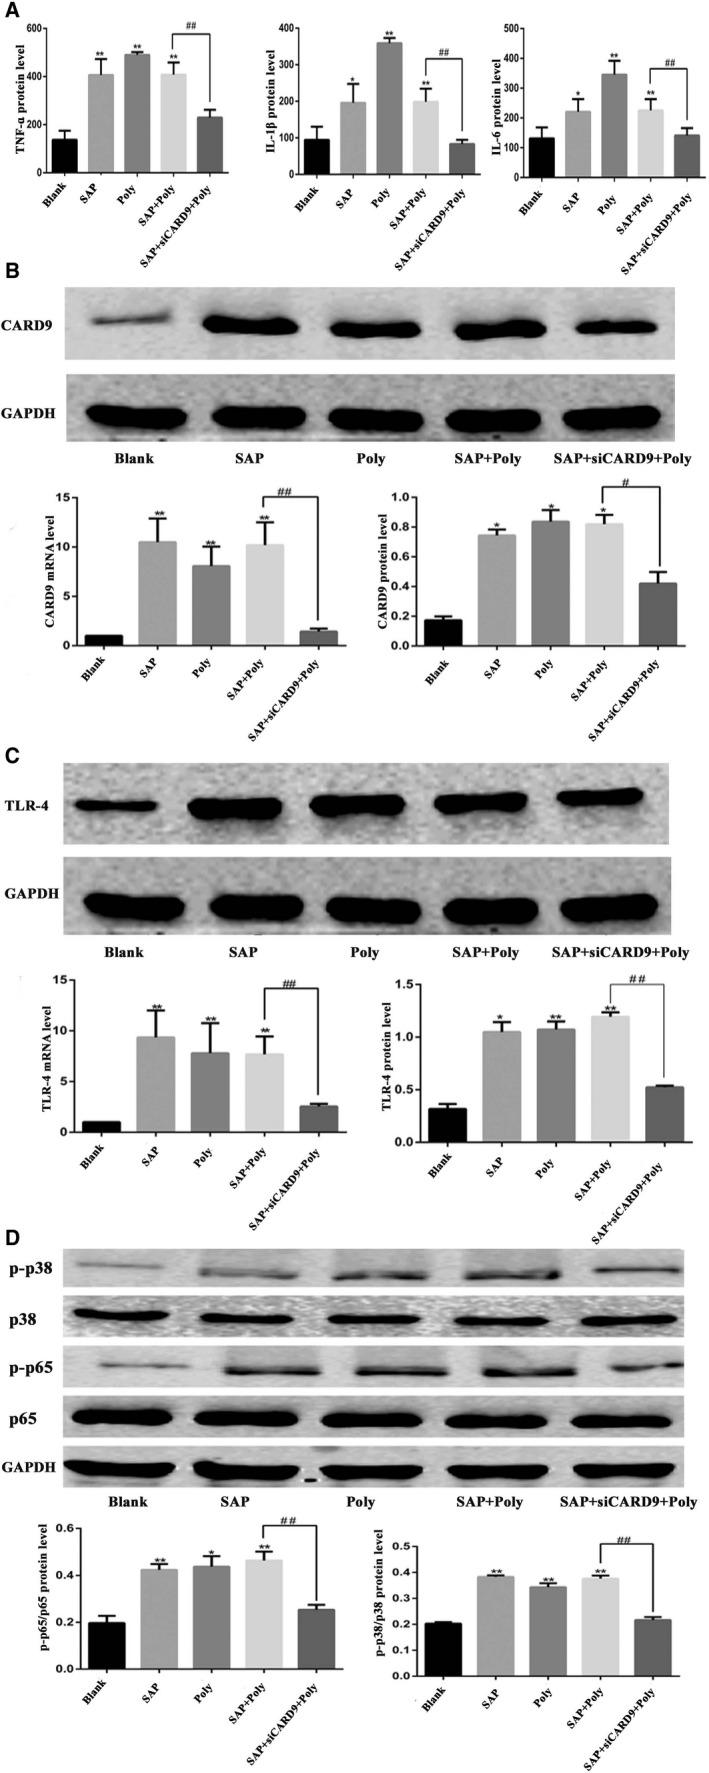 Activation of the TLR4 pathway by polyinosine and suppression of Card9 expression by the si‐Card9 adenovirus. A, The level of TNF‐α, IL‐1βand IL‐6 in cell culture medium from each group. B, mRNA and protein expression of CARD9 in each group. The molecular weight of the CARD9 bands was 62 kD. C, mRNA and protein expression of TLR4 in each group. The molecular weight of the TLR4 bands was 95 kD. D, Phosphorylation of NF‐κB and P38 in peritoneal macrophages from each group at the 6‐h time point. The molecular weight of the NF‐κBp65 and P38 bands were 65kD and 43 kD.*: SAP group or Poly or SAP + Poly group vs Blank group, P